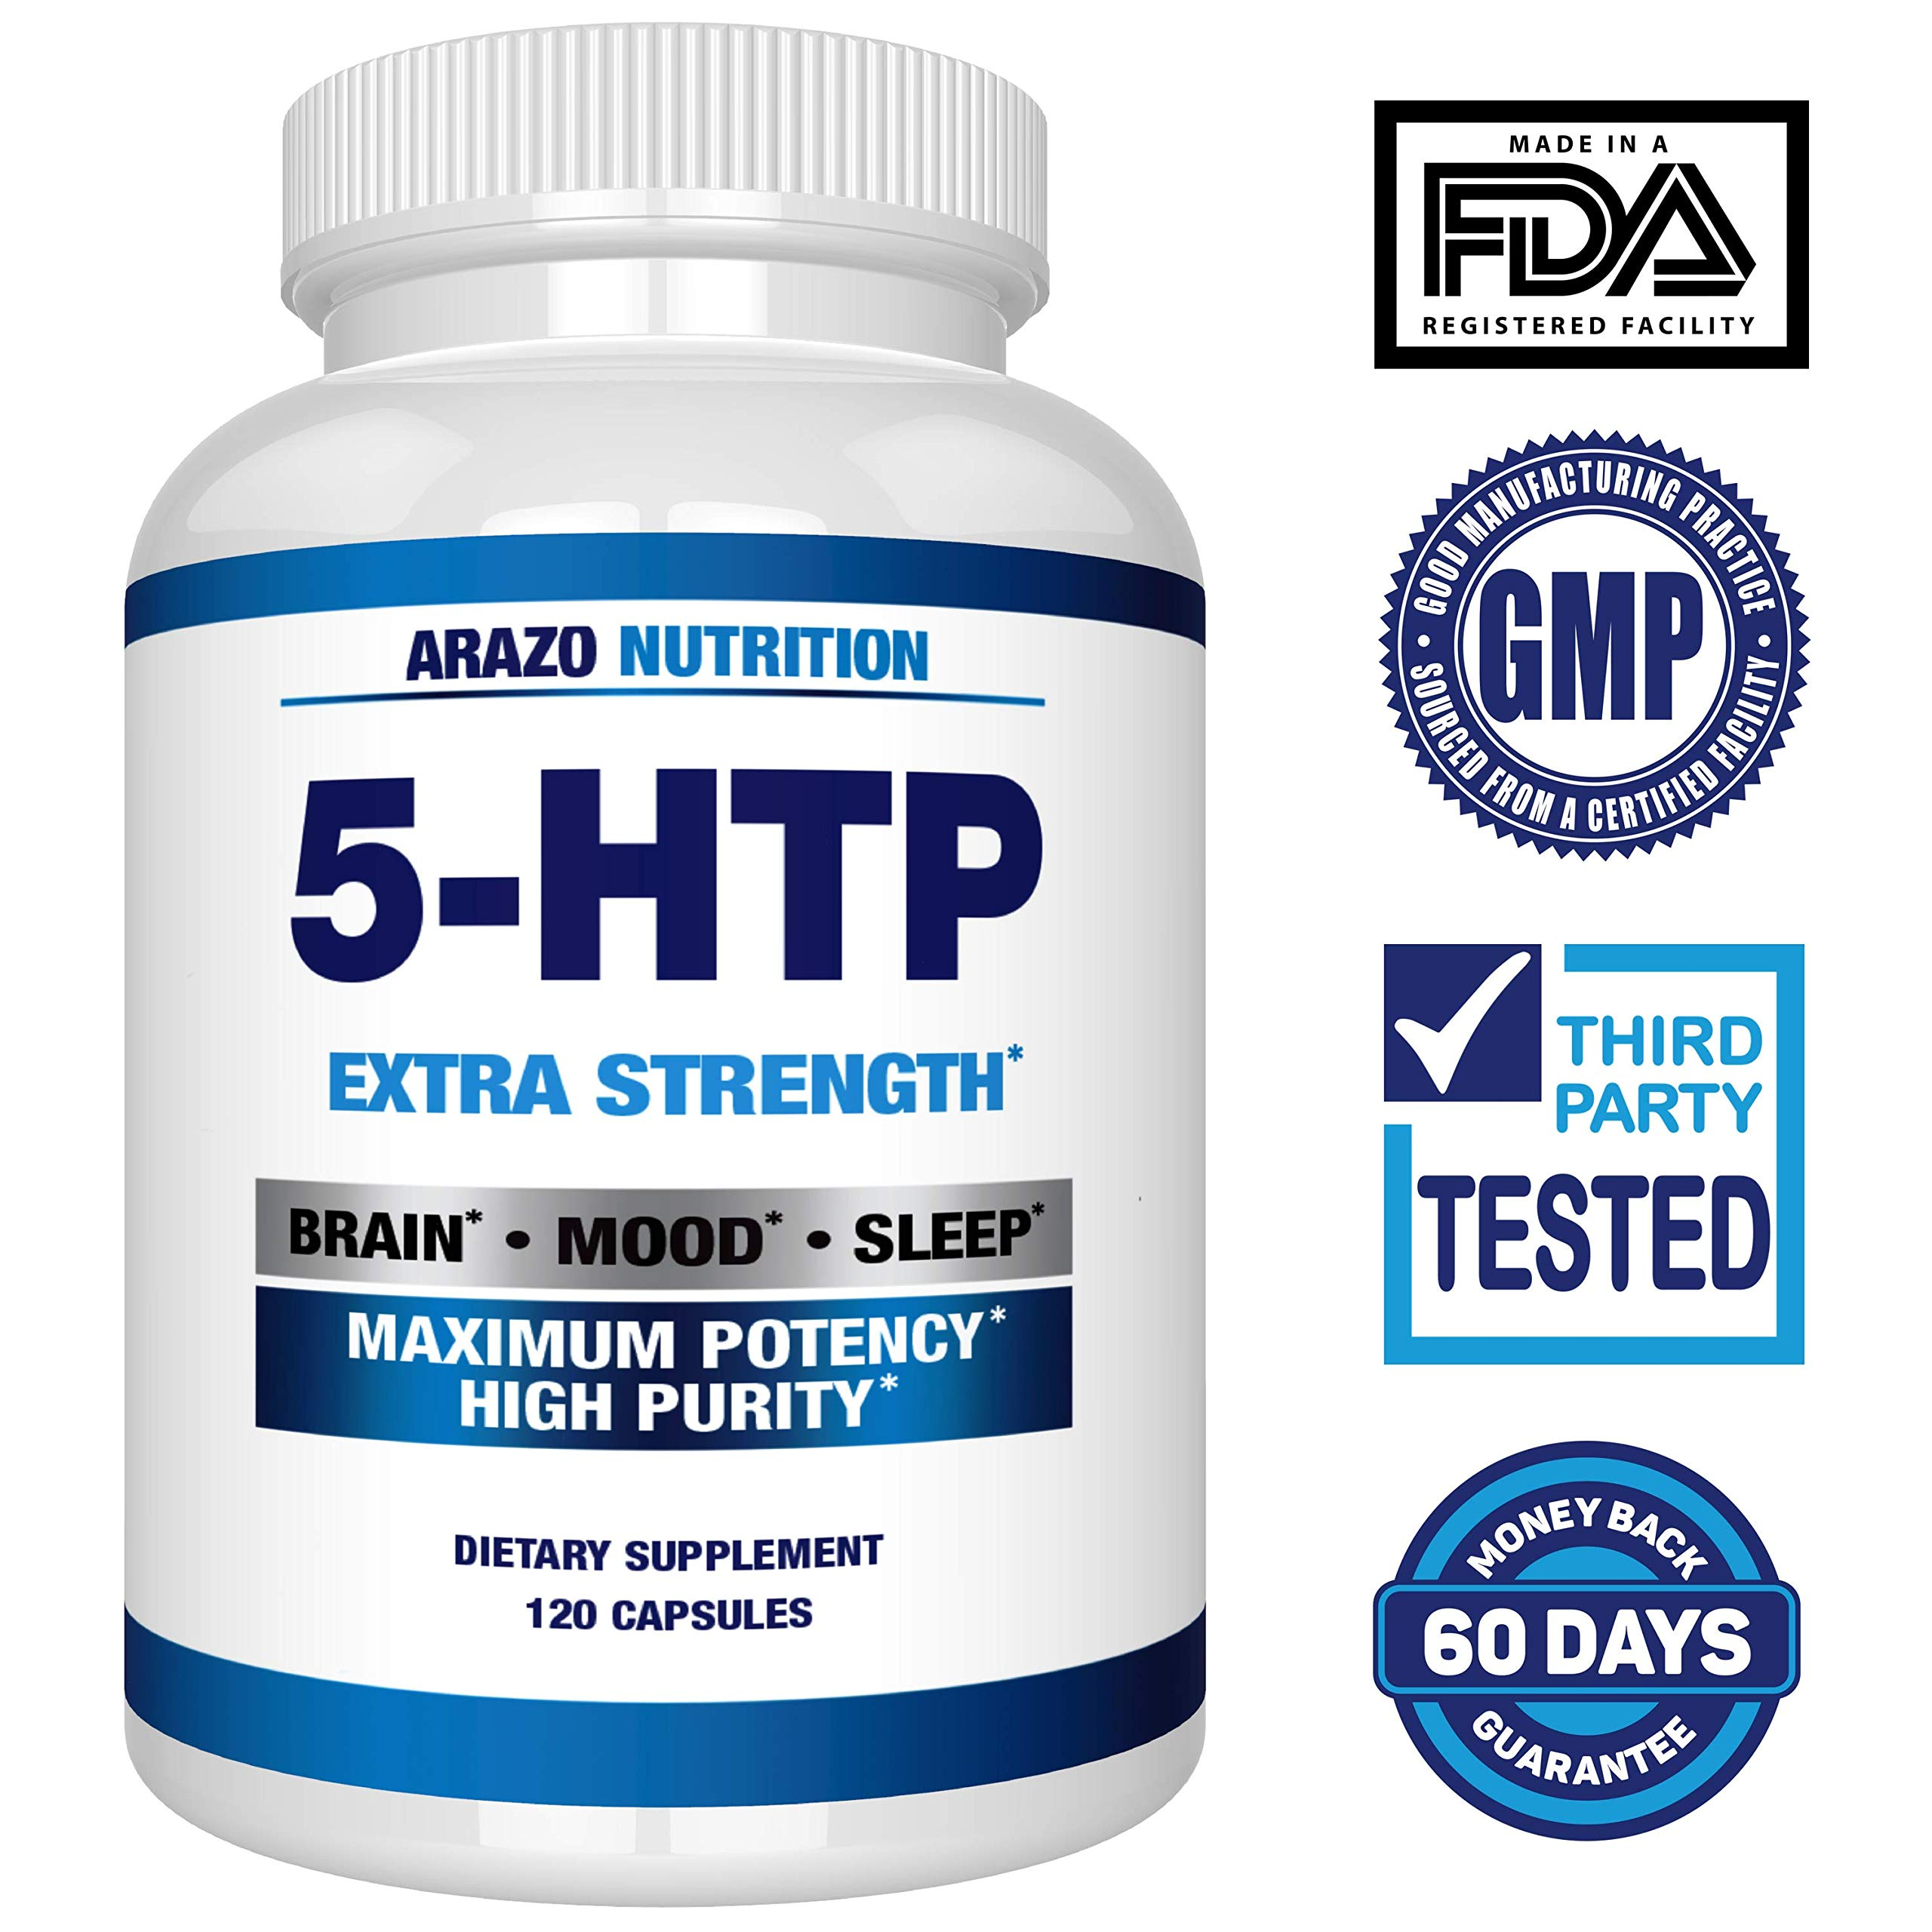 5-HTP 200 mg Supplement - 120 Capsules - Arazo Nutrition by Arazo Nutrition (Image #2)